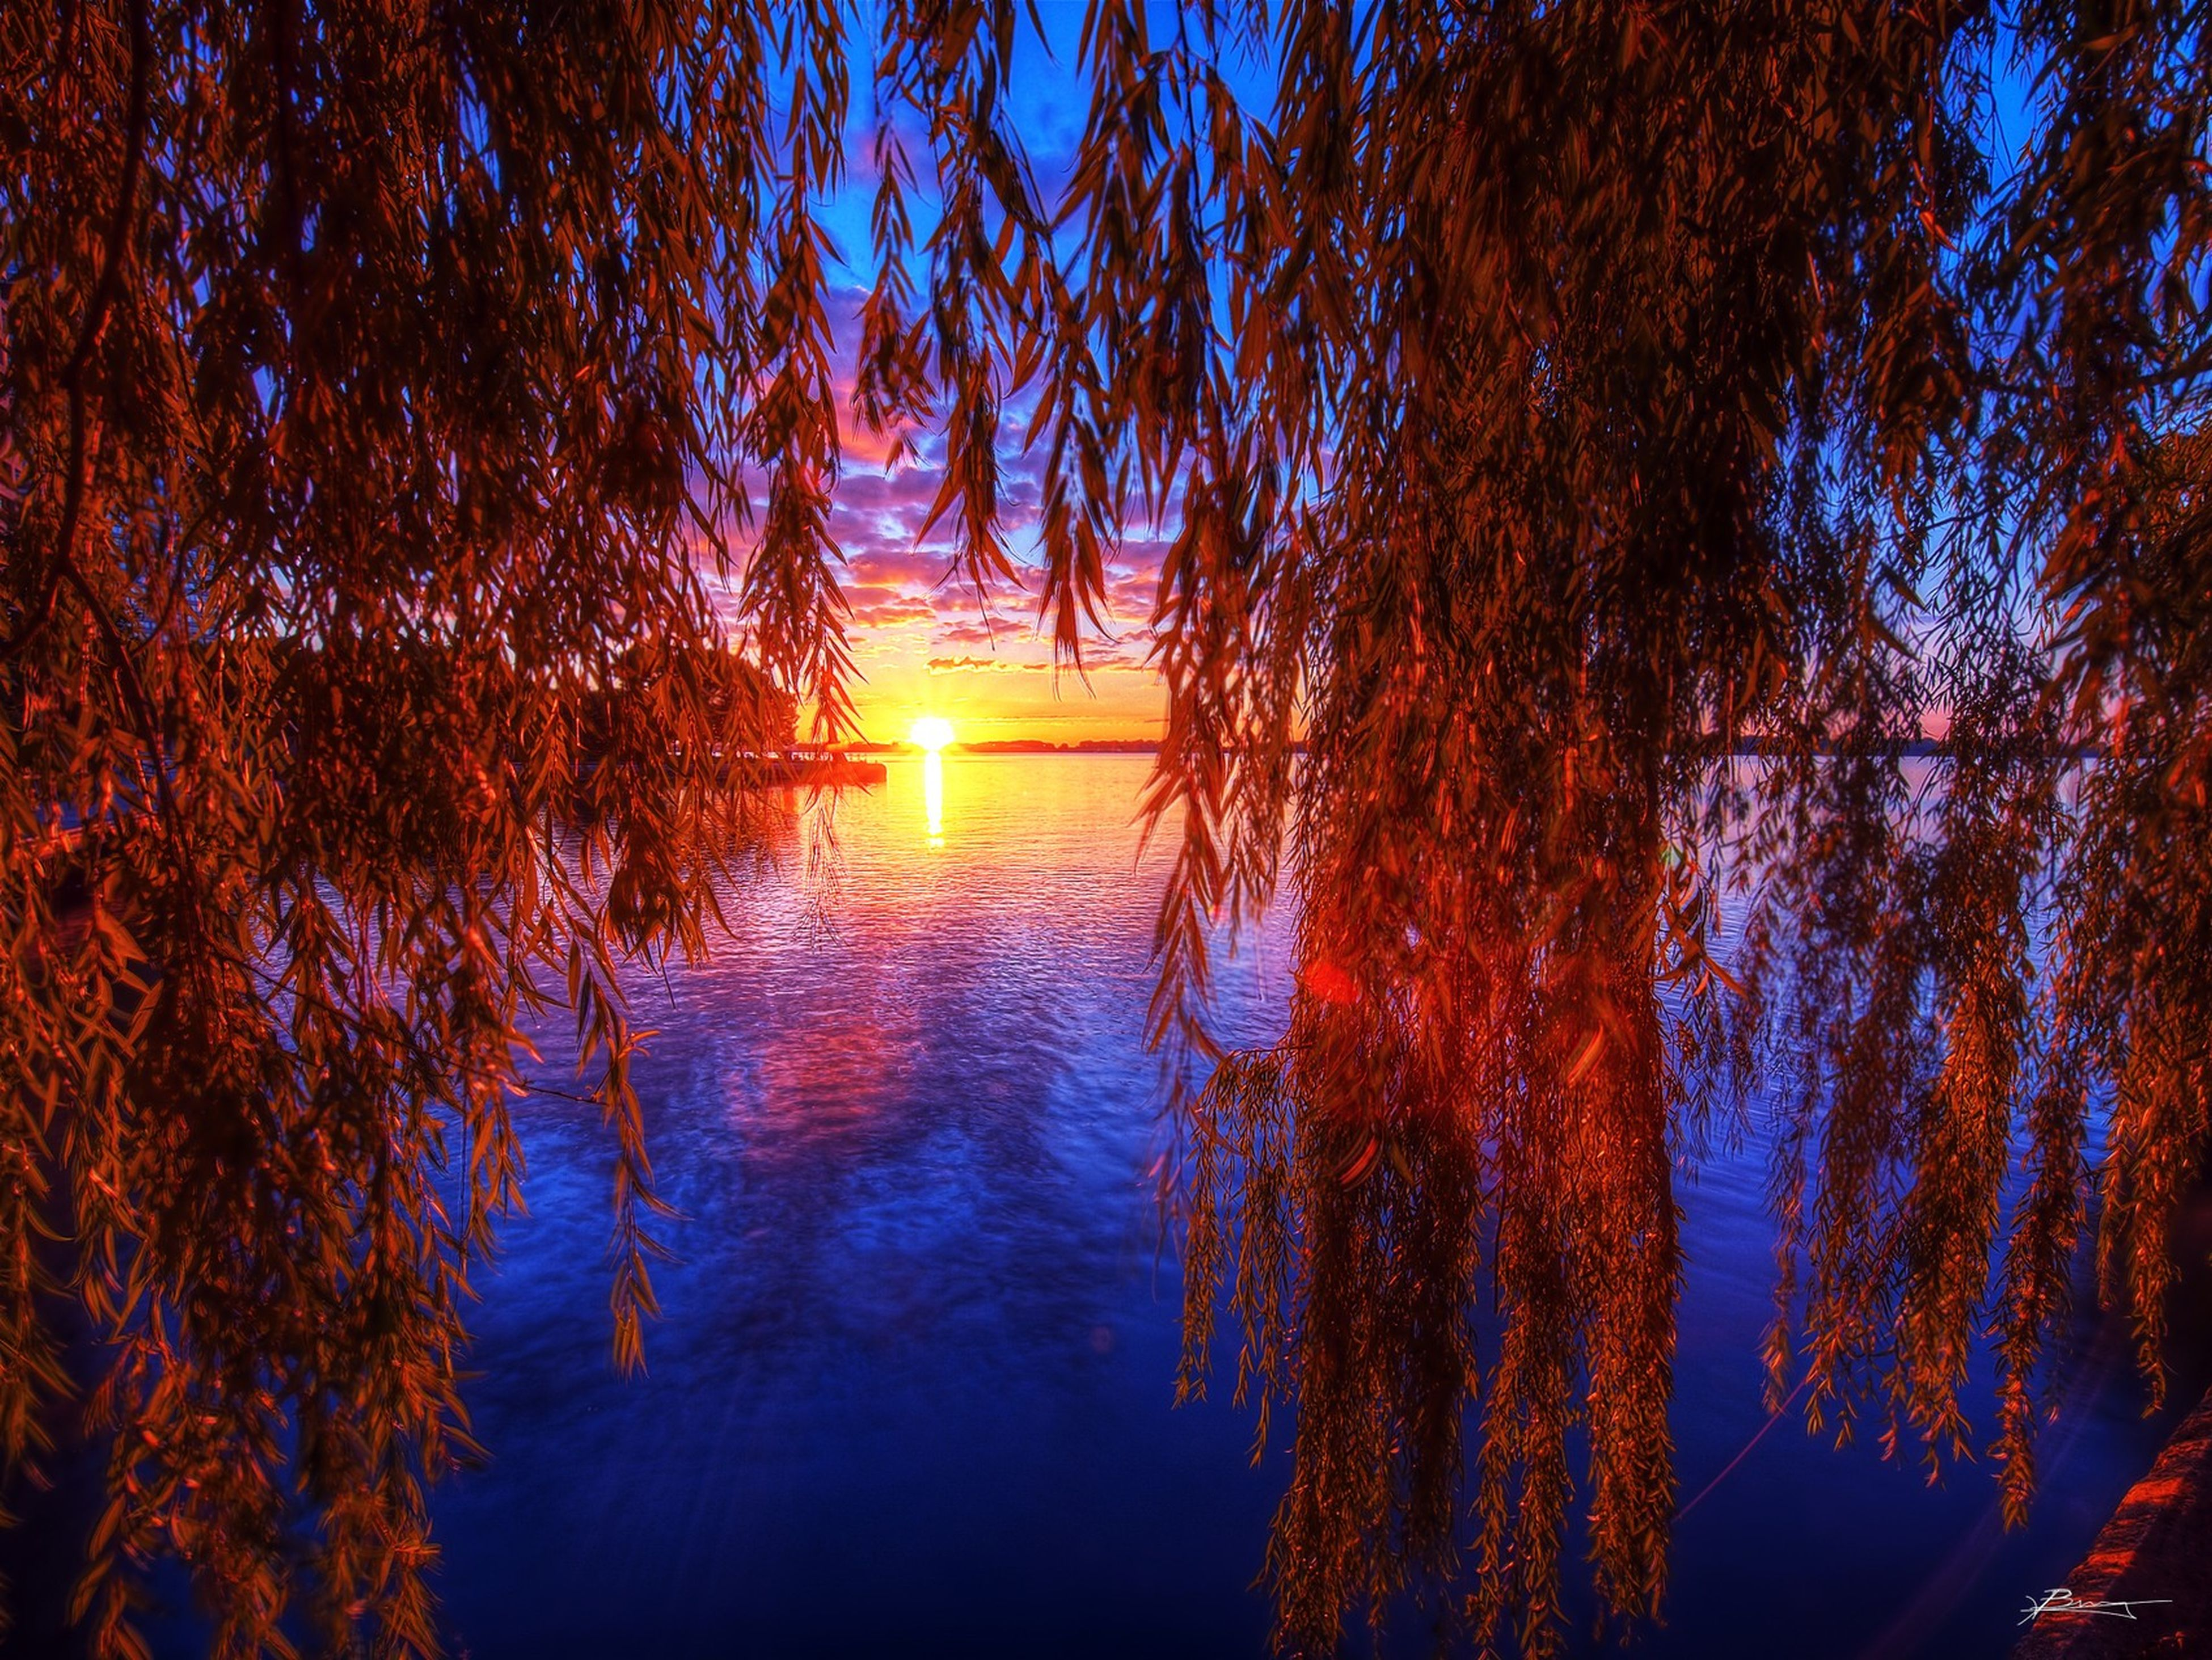 water, tranquility, tree, sunset, tranquil scene, reflection, scenics, beauty in nature, nature, lake, idyllic, orange color, sky, silhouette, sun, branch, sunlight, outdoors, no people, non-urban scene